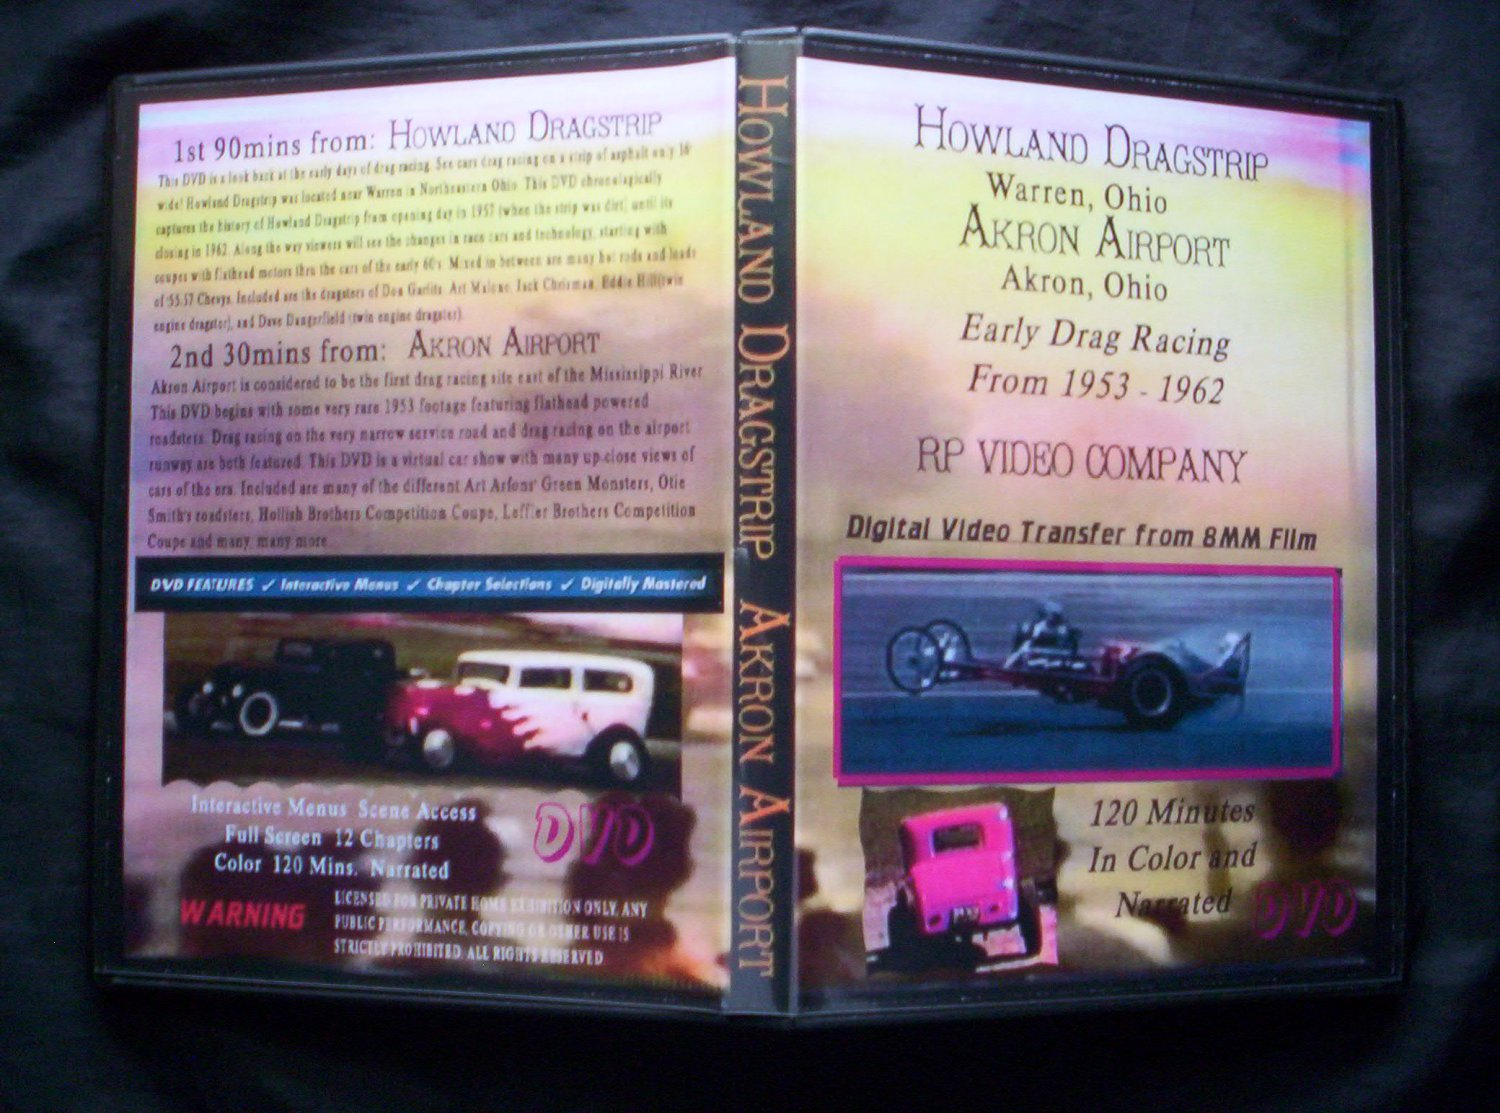 HOWLAND DRAGSTRIP DVD Early Drag-Racing From 1953-1962